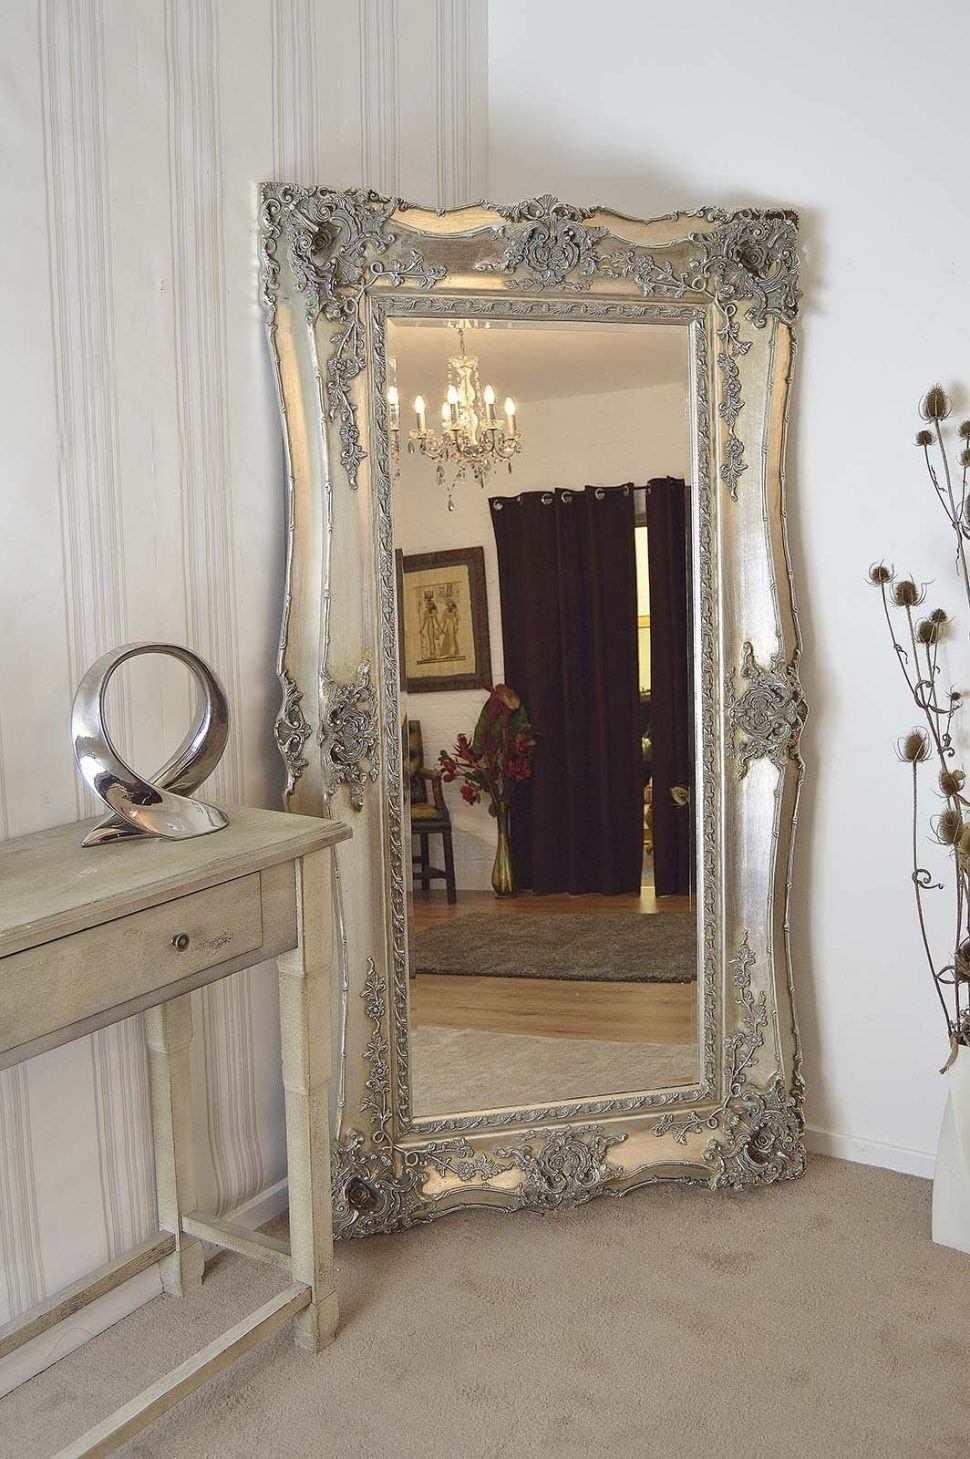 Bedroom Furniture Large Gold Mirror Free Standing Mirror Wooden For Antique Free Standing Mirror (Image 4 of 15)